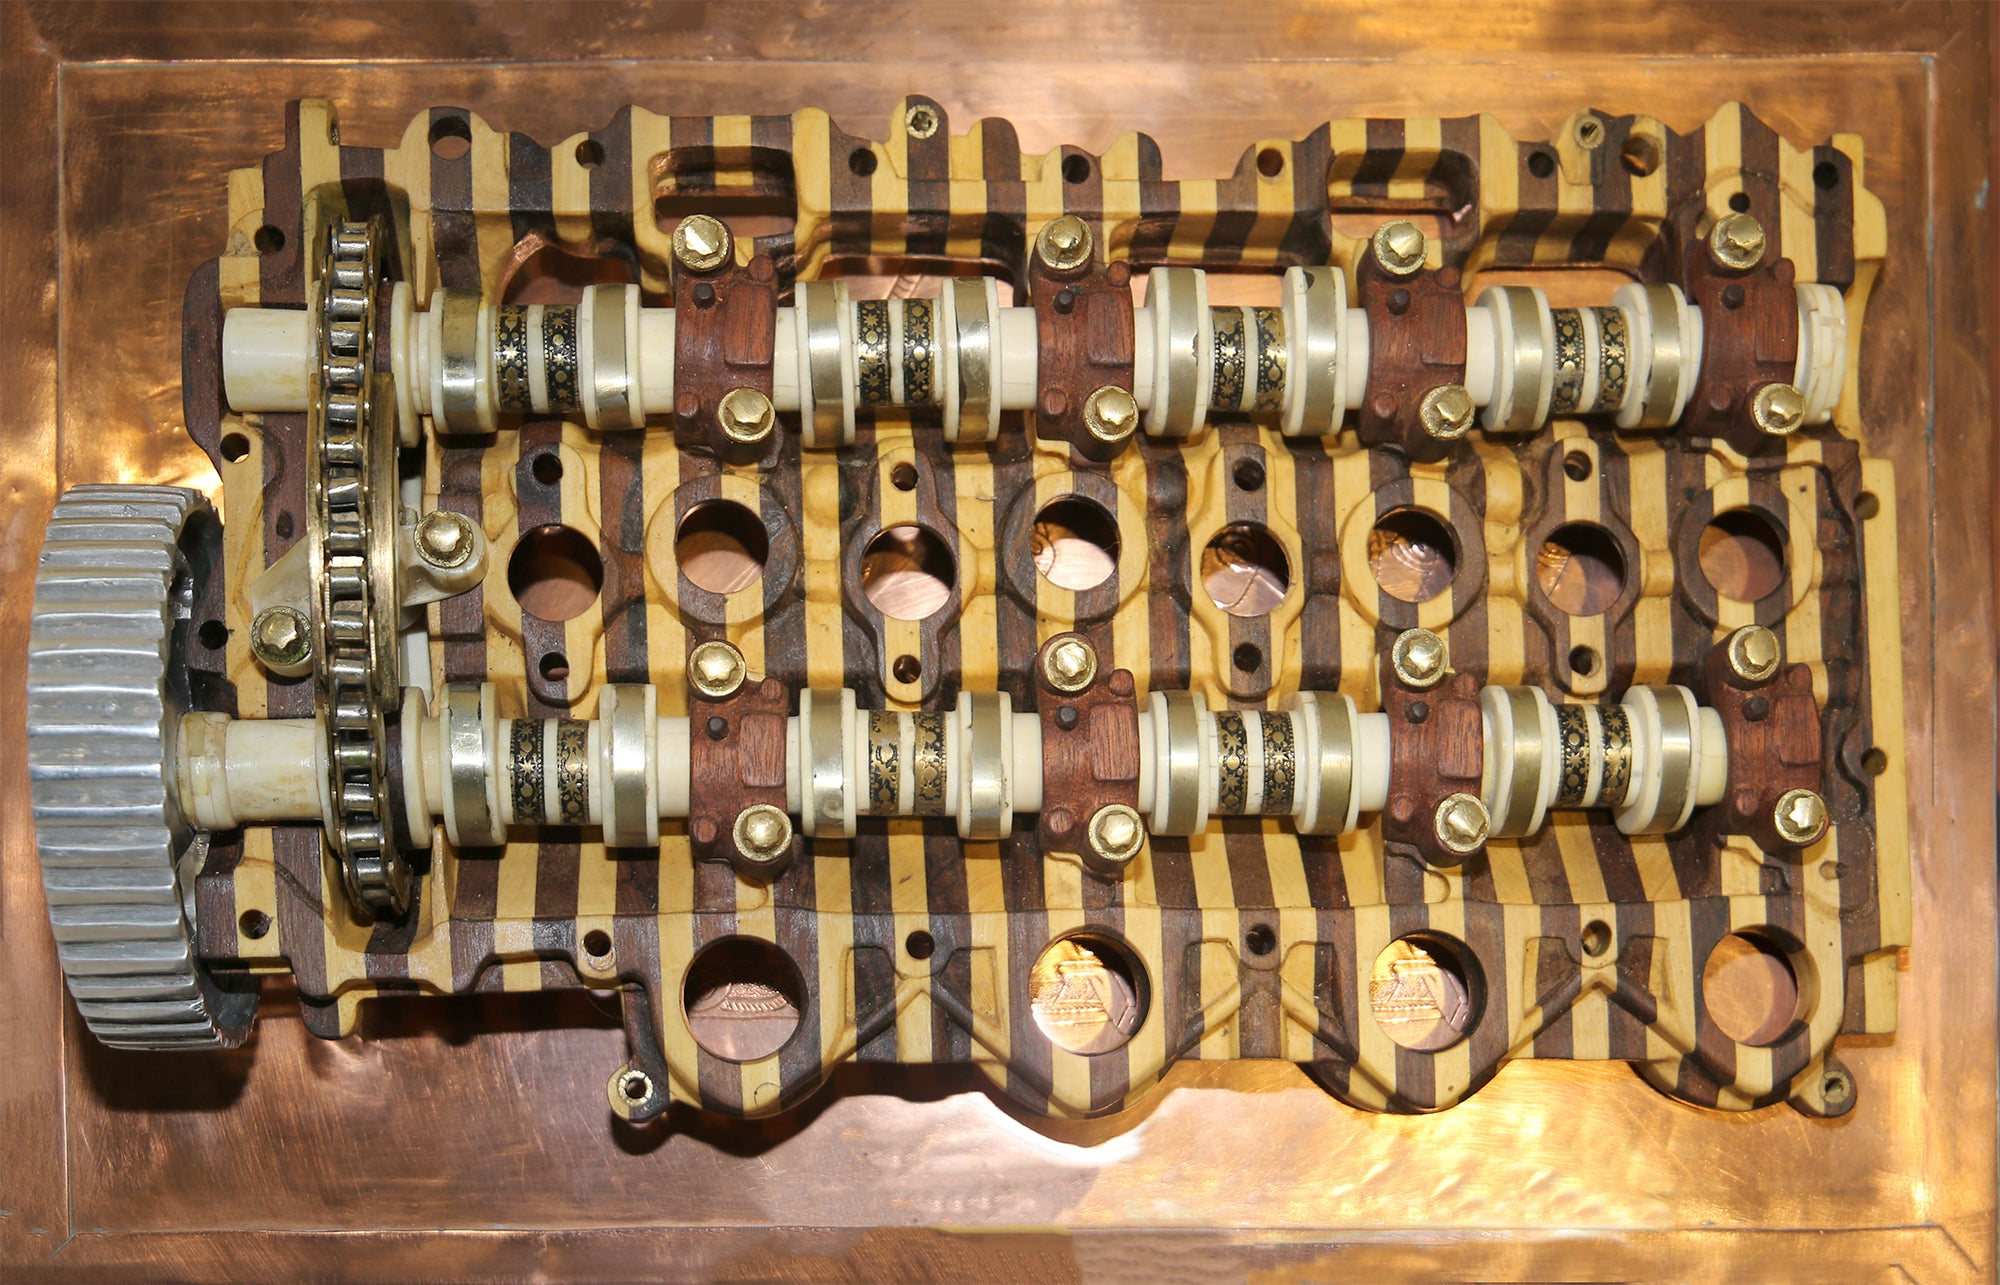 Eric Van Hove - Untitled (Peugeot-Citroën HDI Diesel Camshaft Housing & Rocker Assembly)